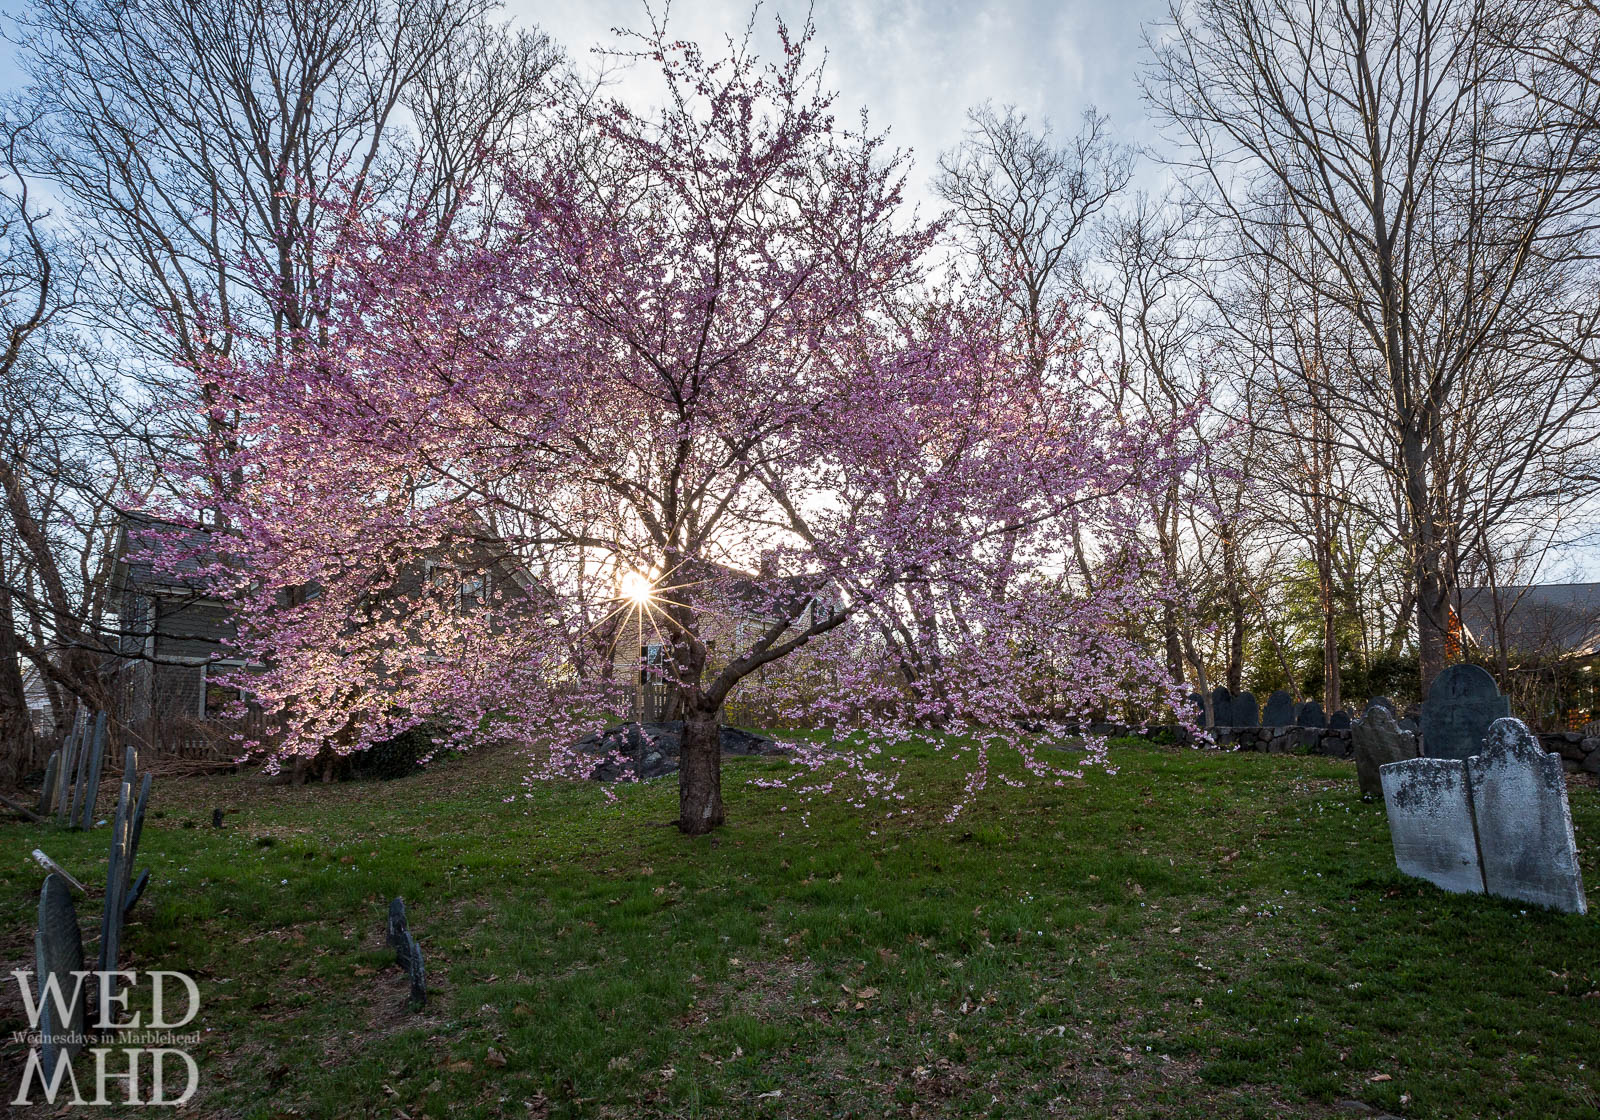 A sunstar is captured between tree branches of a cherry blossom in full bloom